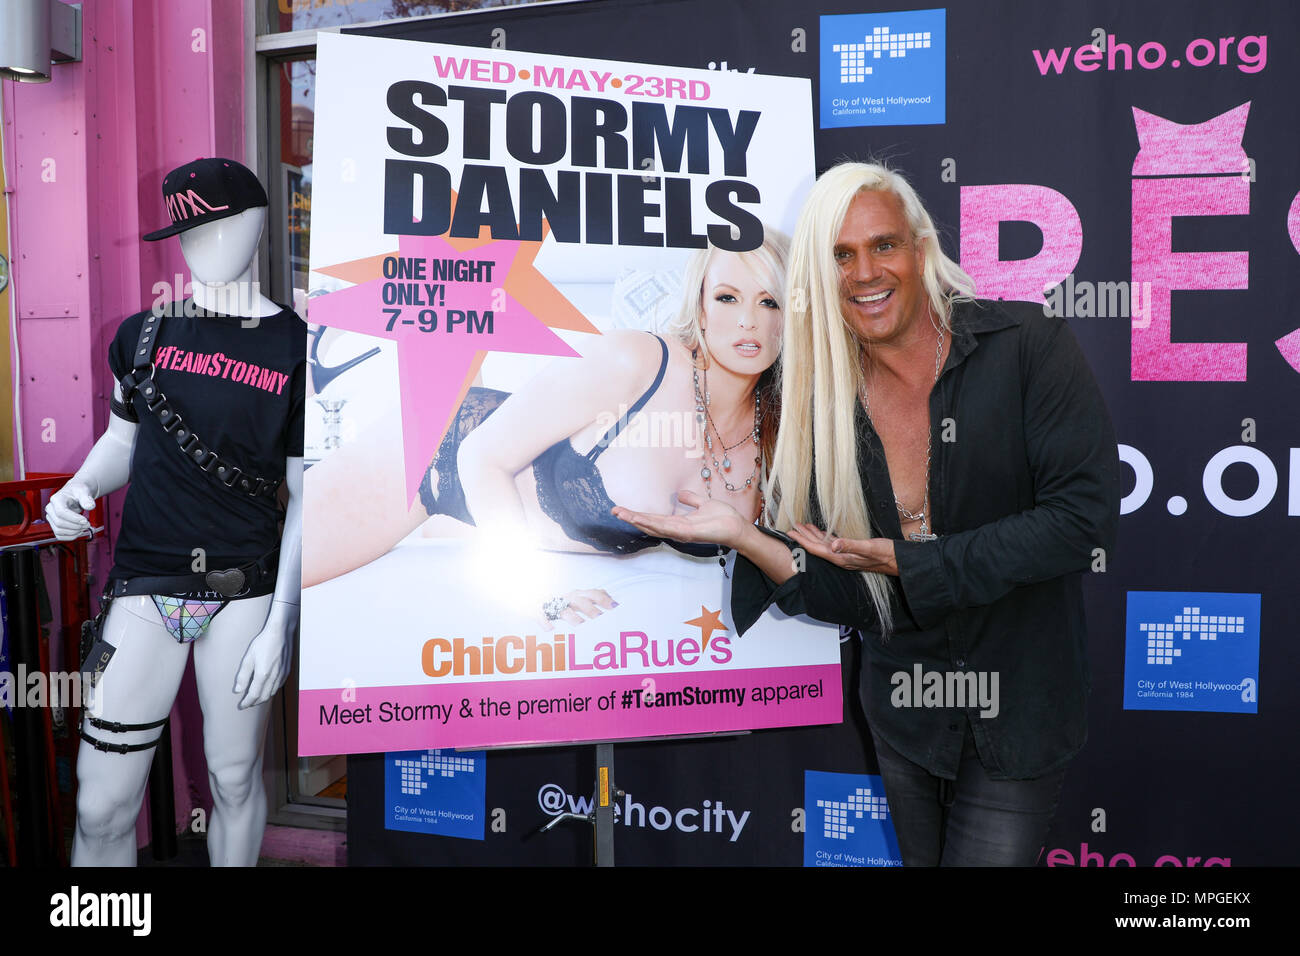 """West Hollywood, California, USA. 23rd May, 2018. Actor Daneil DiCrispio attends event where Stormy Daniels is being honored with a """"Stormy Daniels Day"""" Proclamation and a Key to the City of West Hollywood, California at Chi Chi LaRue's in West Hollywood, California.  Credit: Sheri Determan/Alamy Live News Stock Photo"""